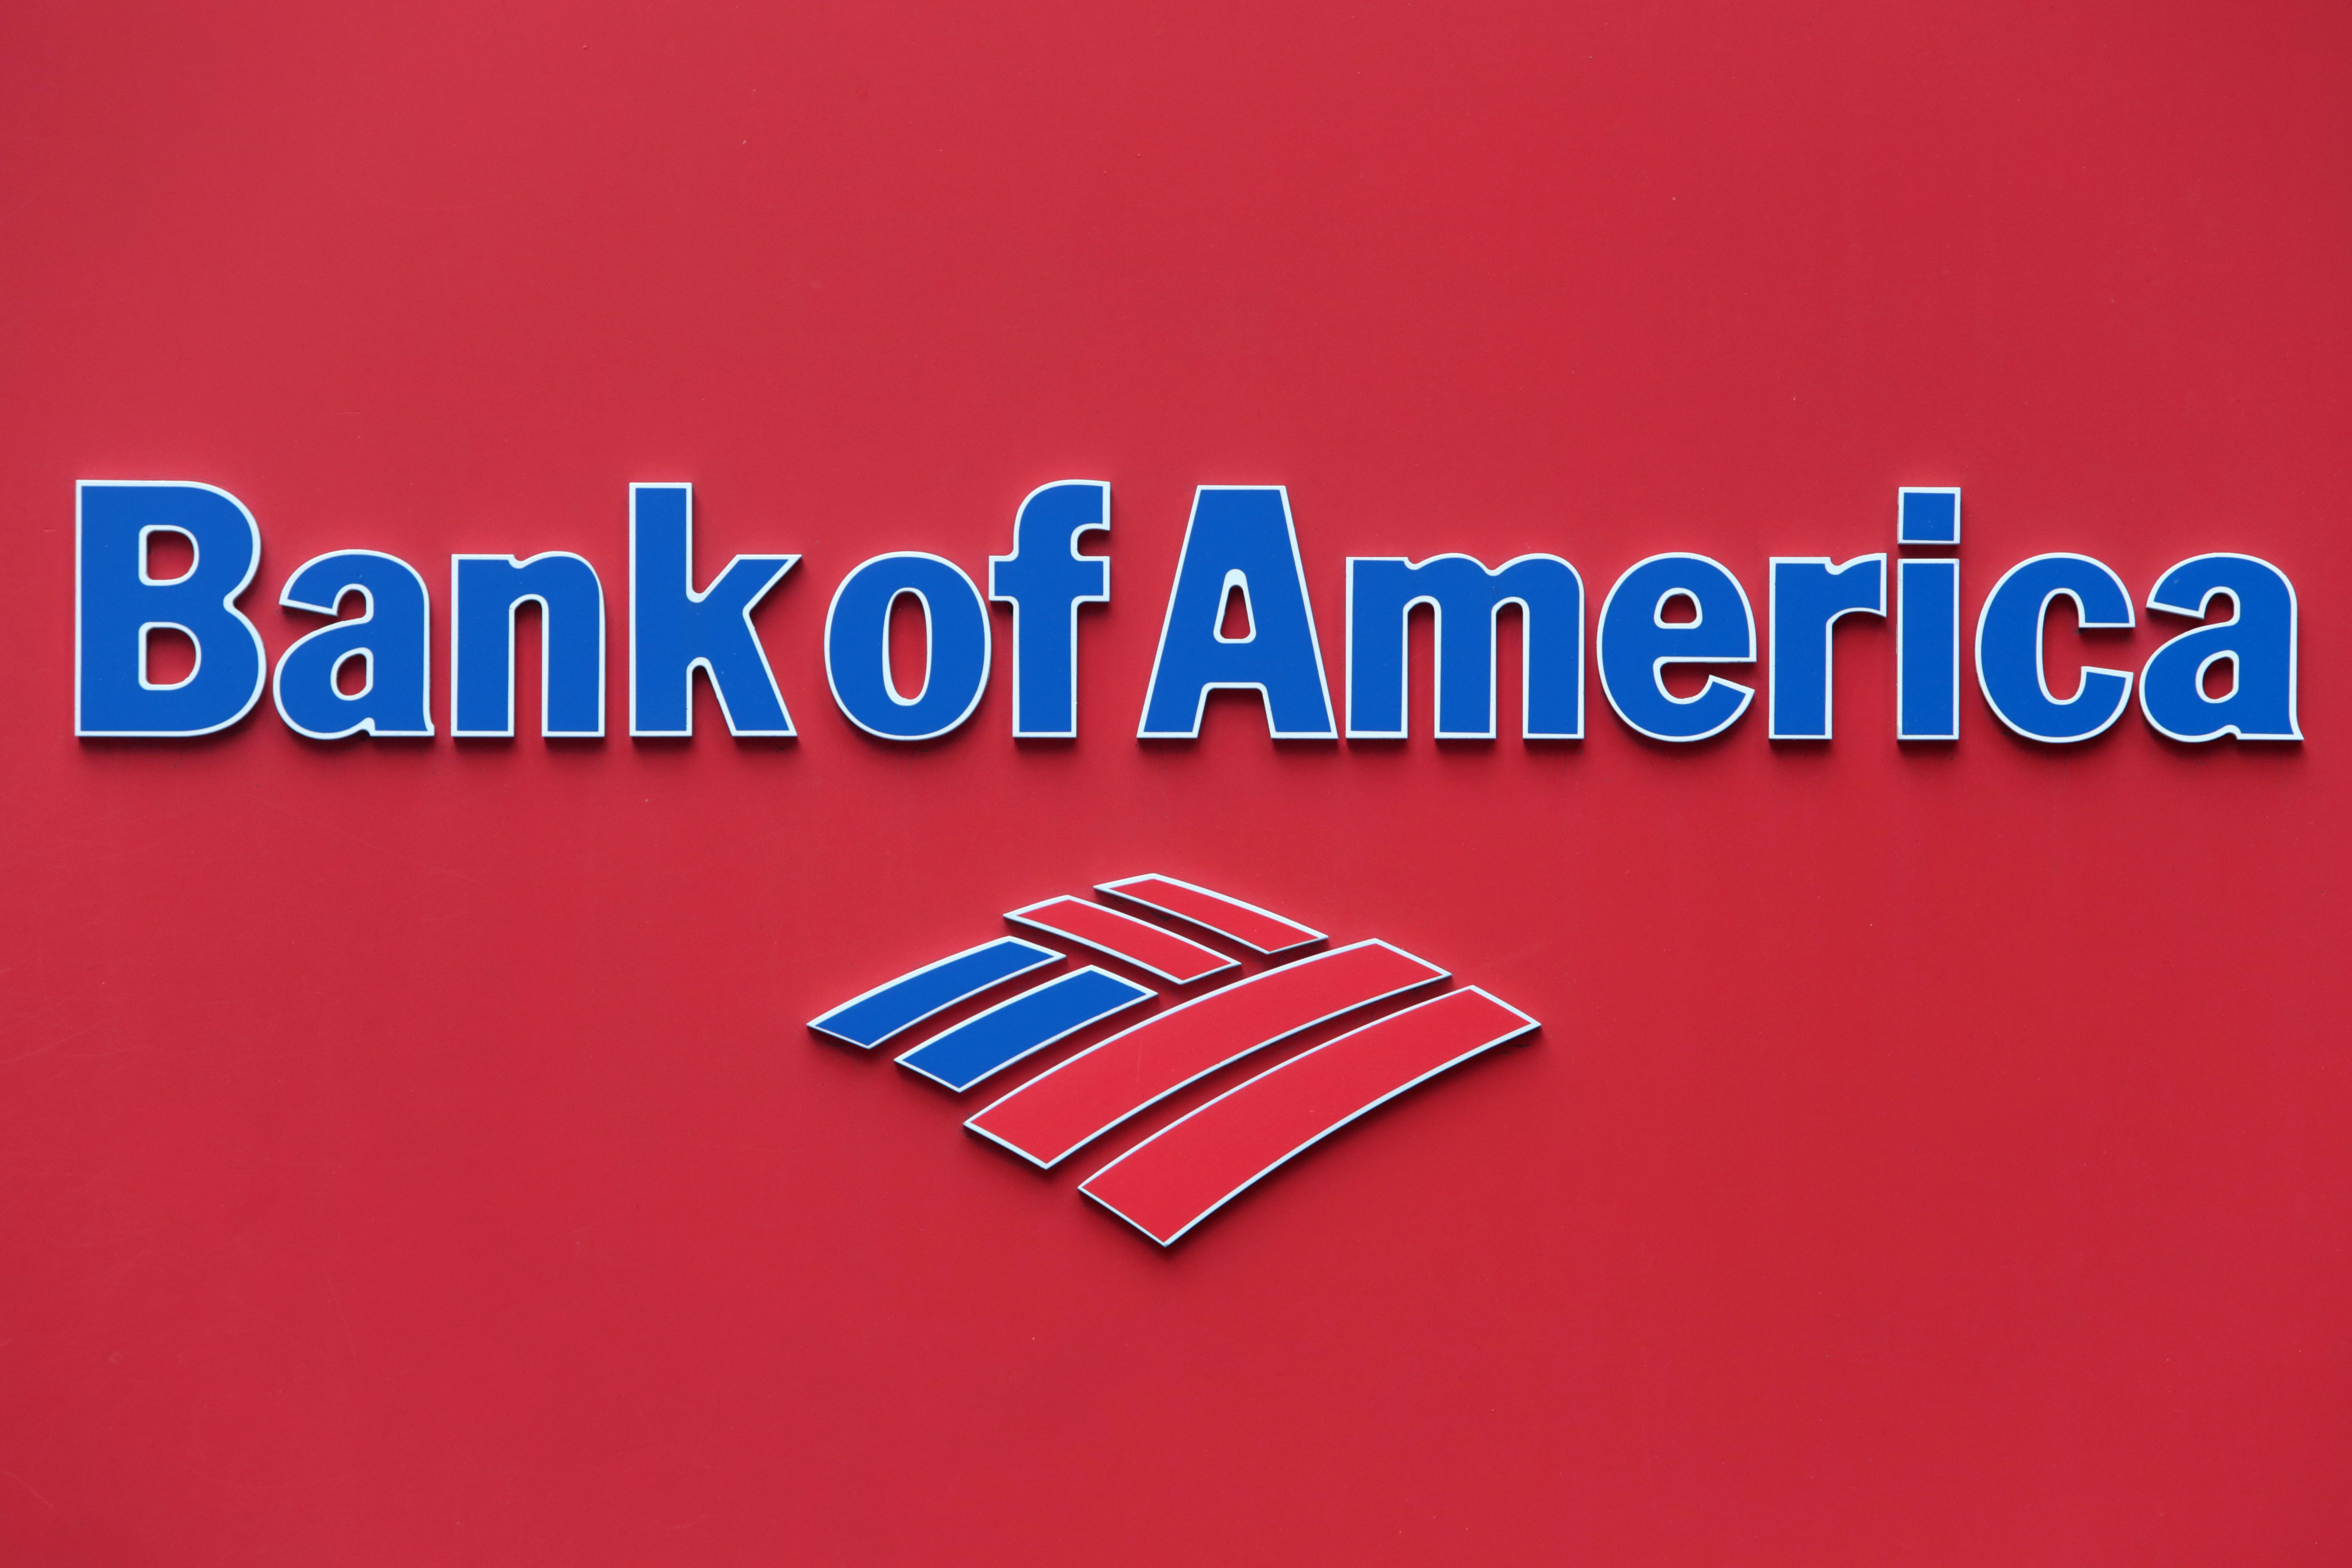 Bank Of America Locations Wiring Library Toyota Engine Diagram P062dno1 Vdj200r